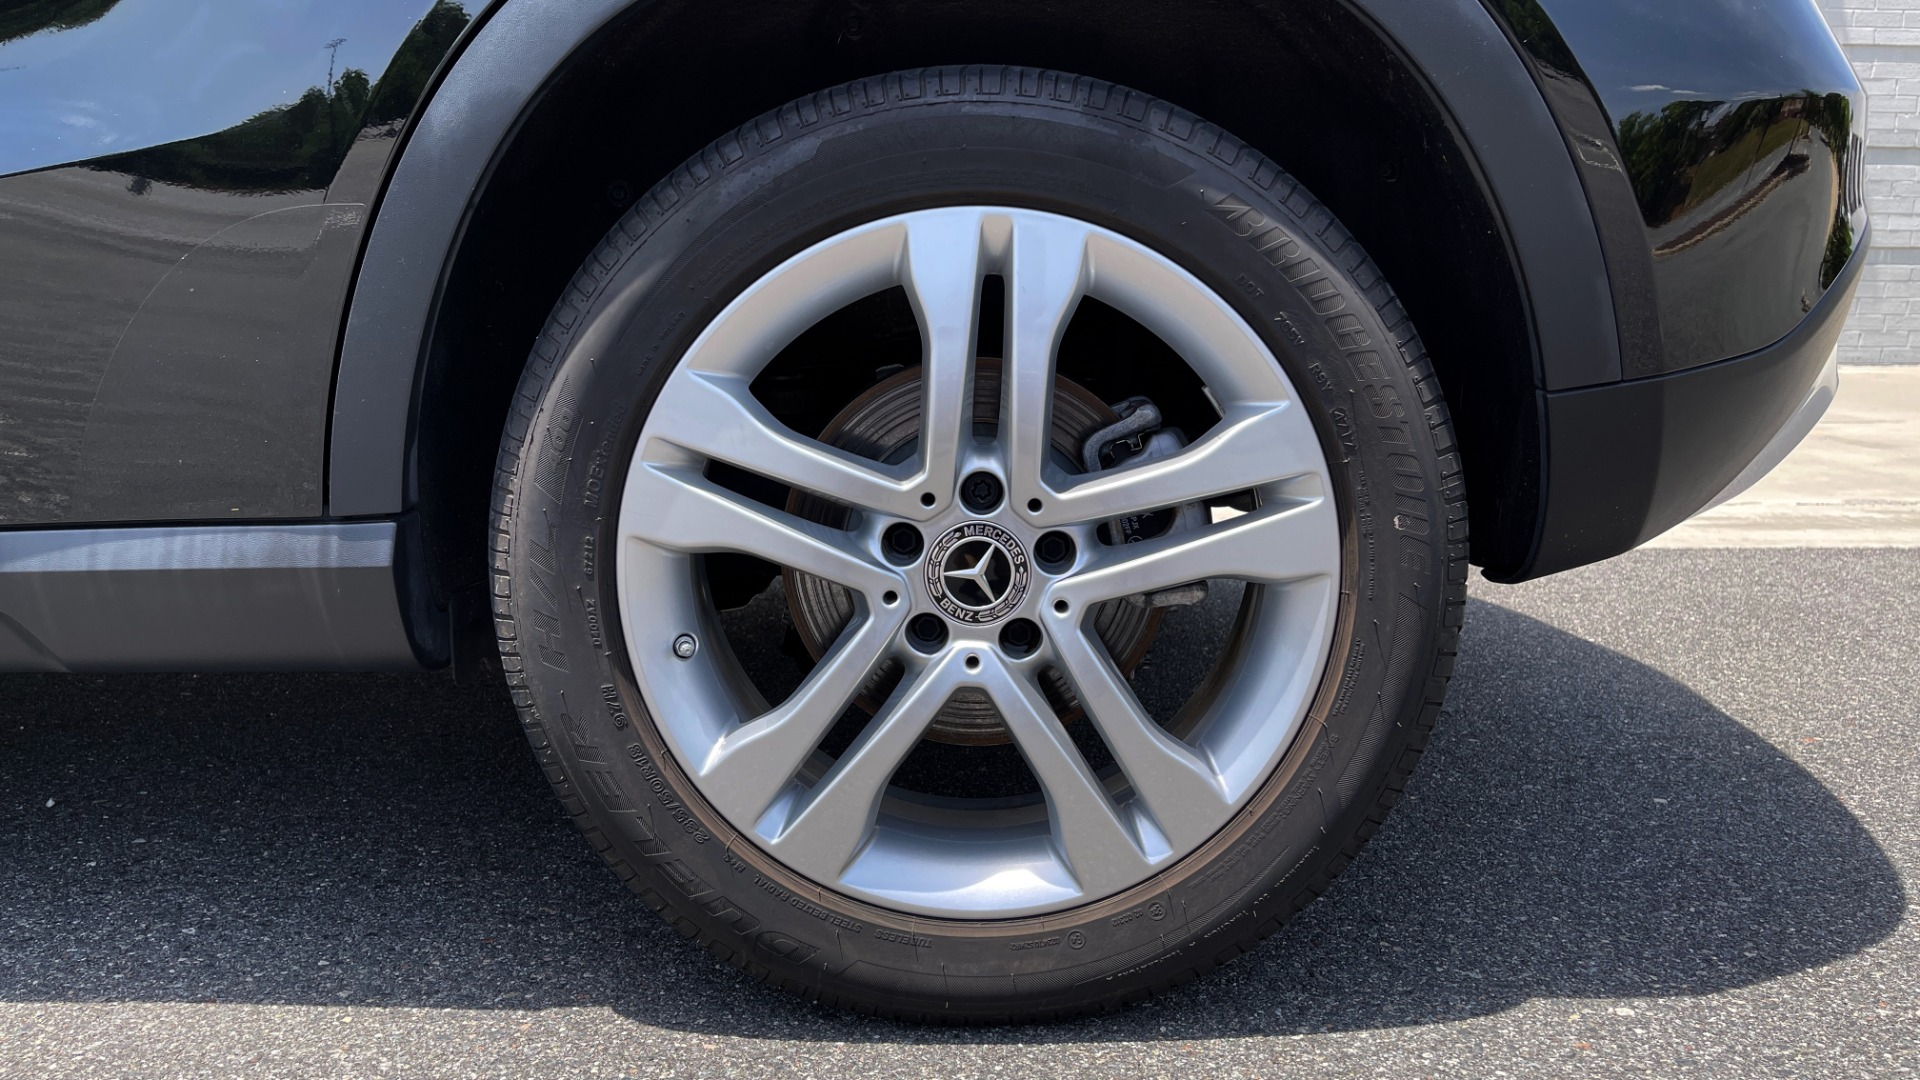 Used 2018 Mercedes-Benz GLA 250 4MATIC SUV / PANO-ROOF / HTD STS / BLIND SPOT ASST / APPLE for sale $31,995 at Formula Imports in Charlotte NC 28227 77